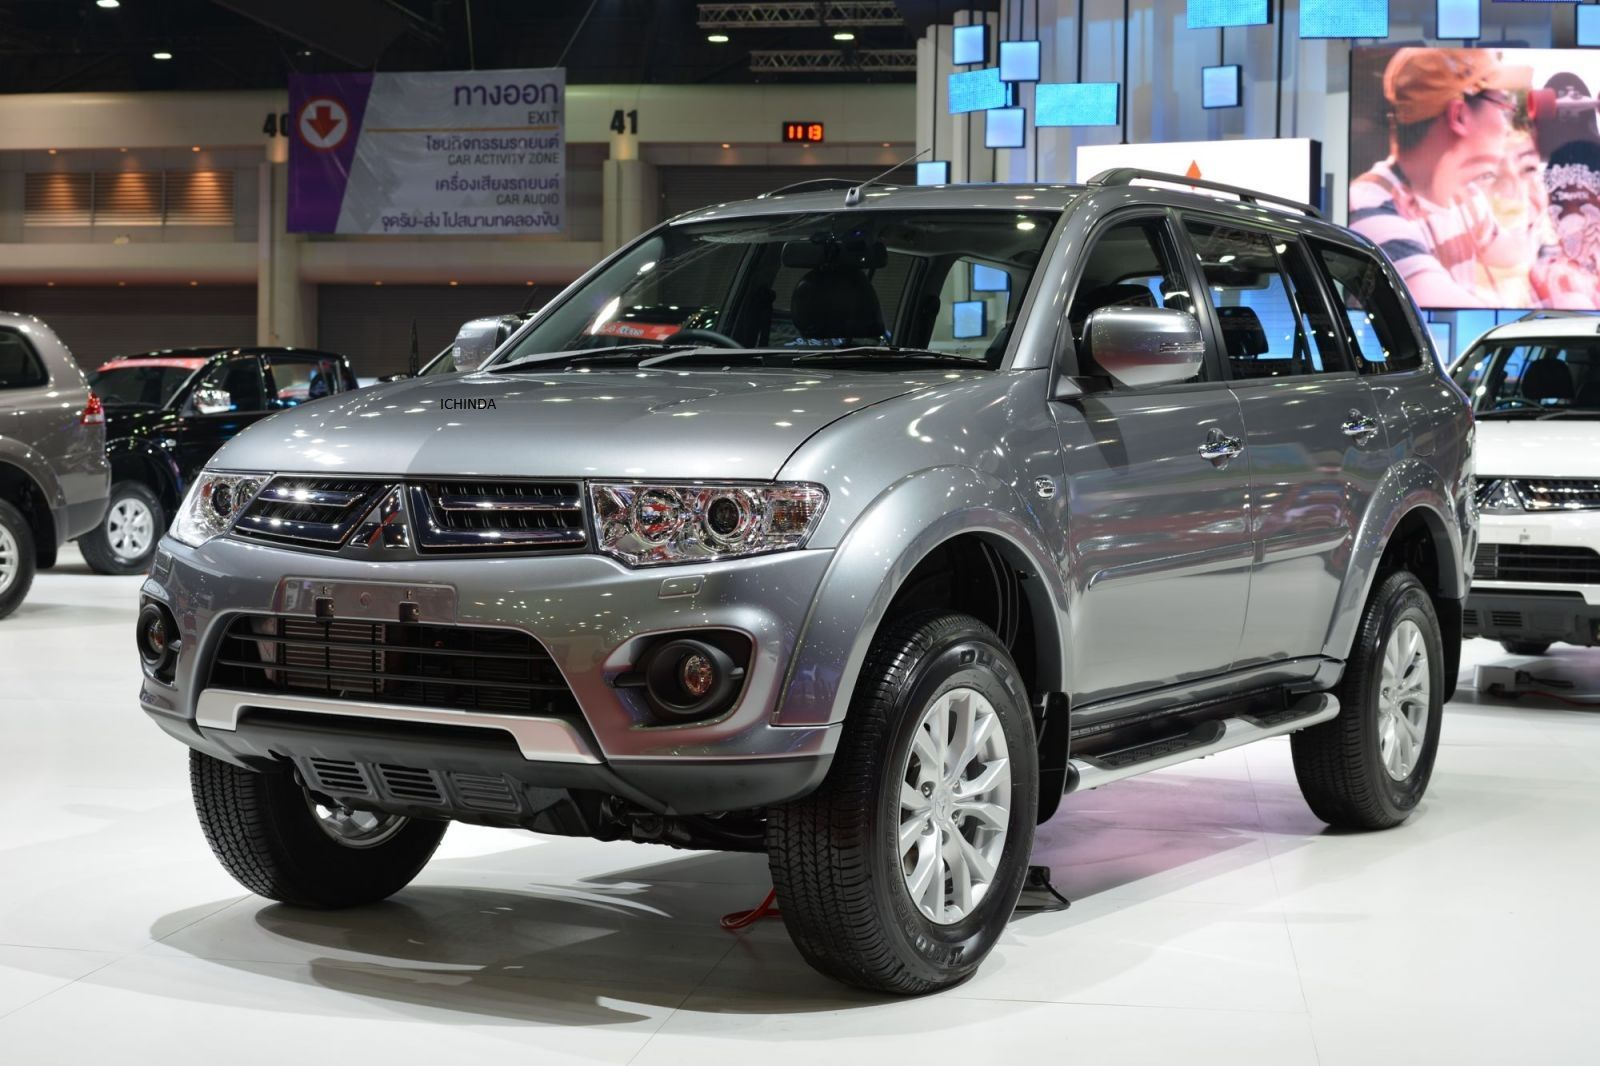 2016 mitsubishi pajero is the featured model the 2016 mitsubishi pajero edition image is added in car pictures category by the author on jun